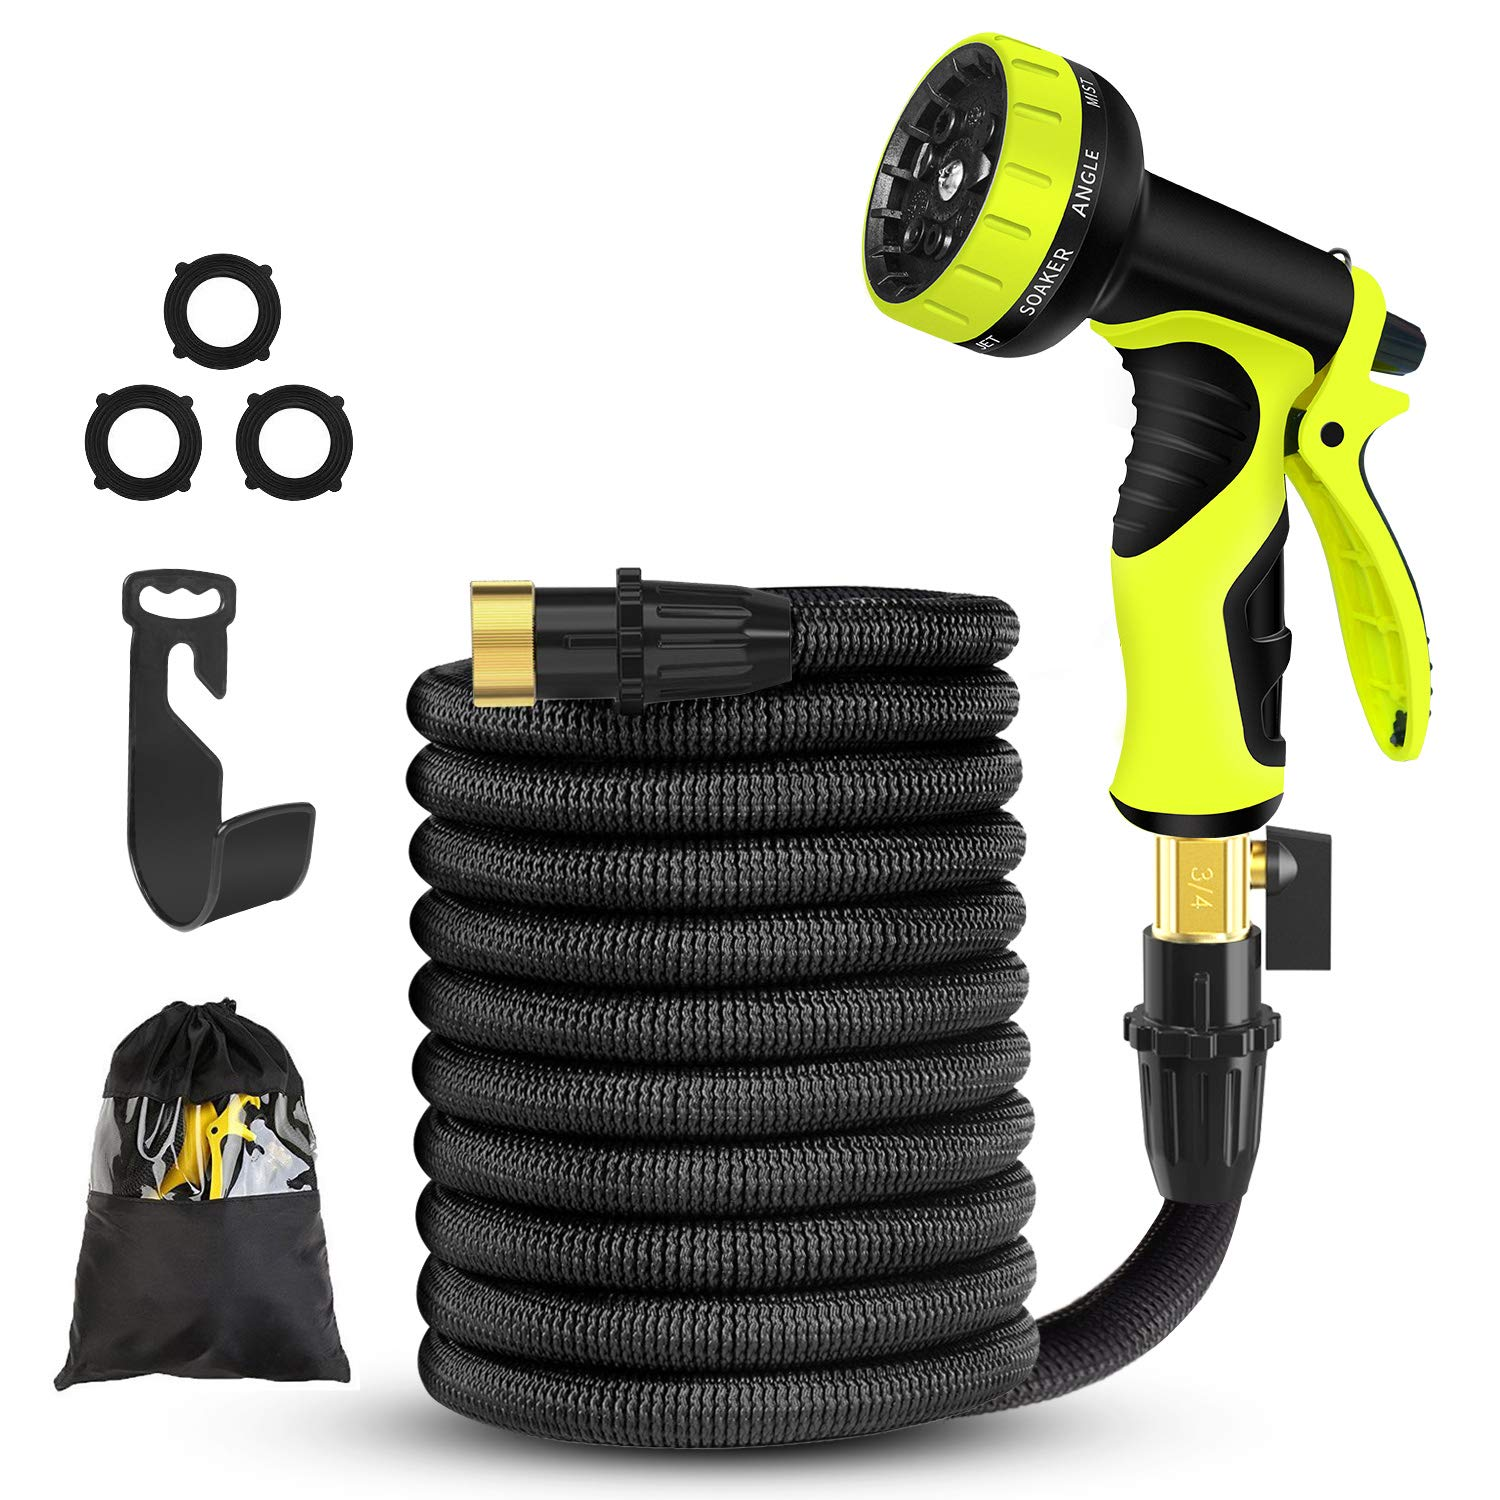 Expandable Garden Hose,50FT Water Hose-Latex Core,Extra Strength Textile,Solid Brass Fittings no Rust&Leak -9 Function Spray Nozzle,Hose Hanger-Best Flexible Expanding Hose for Watering Car (Black)